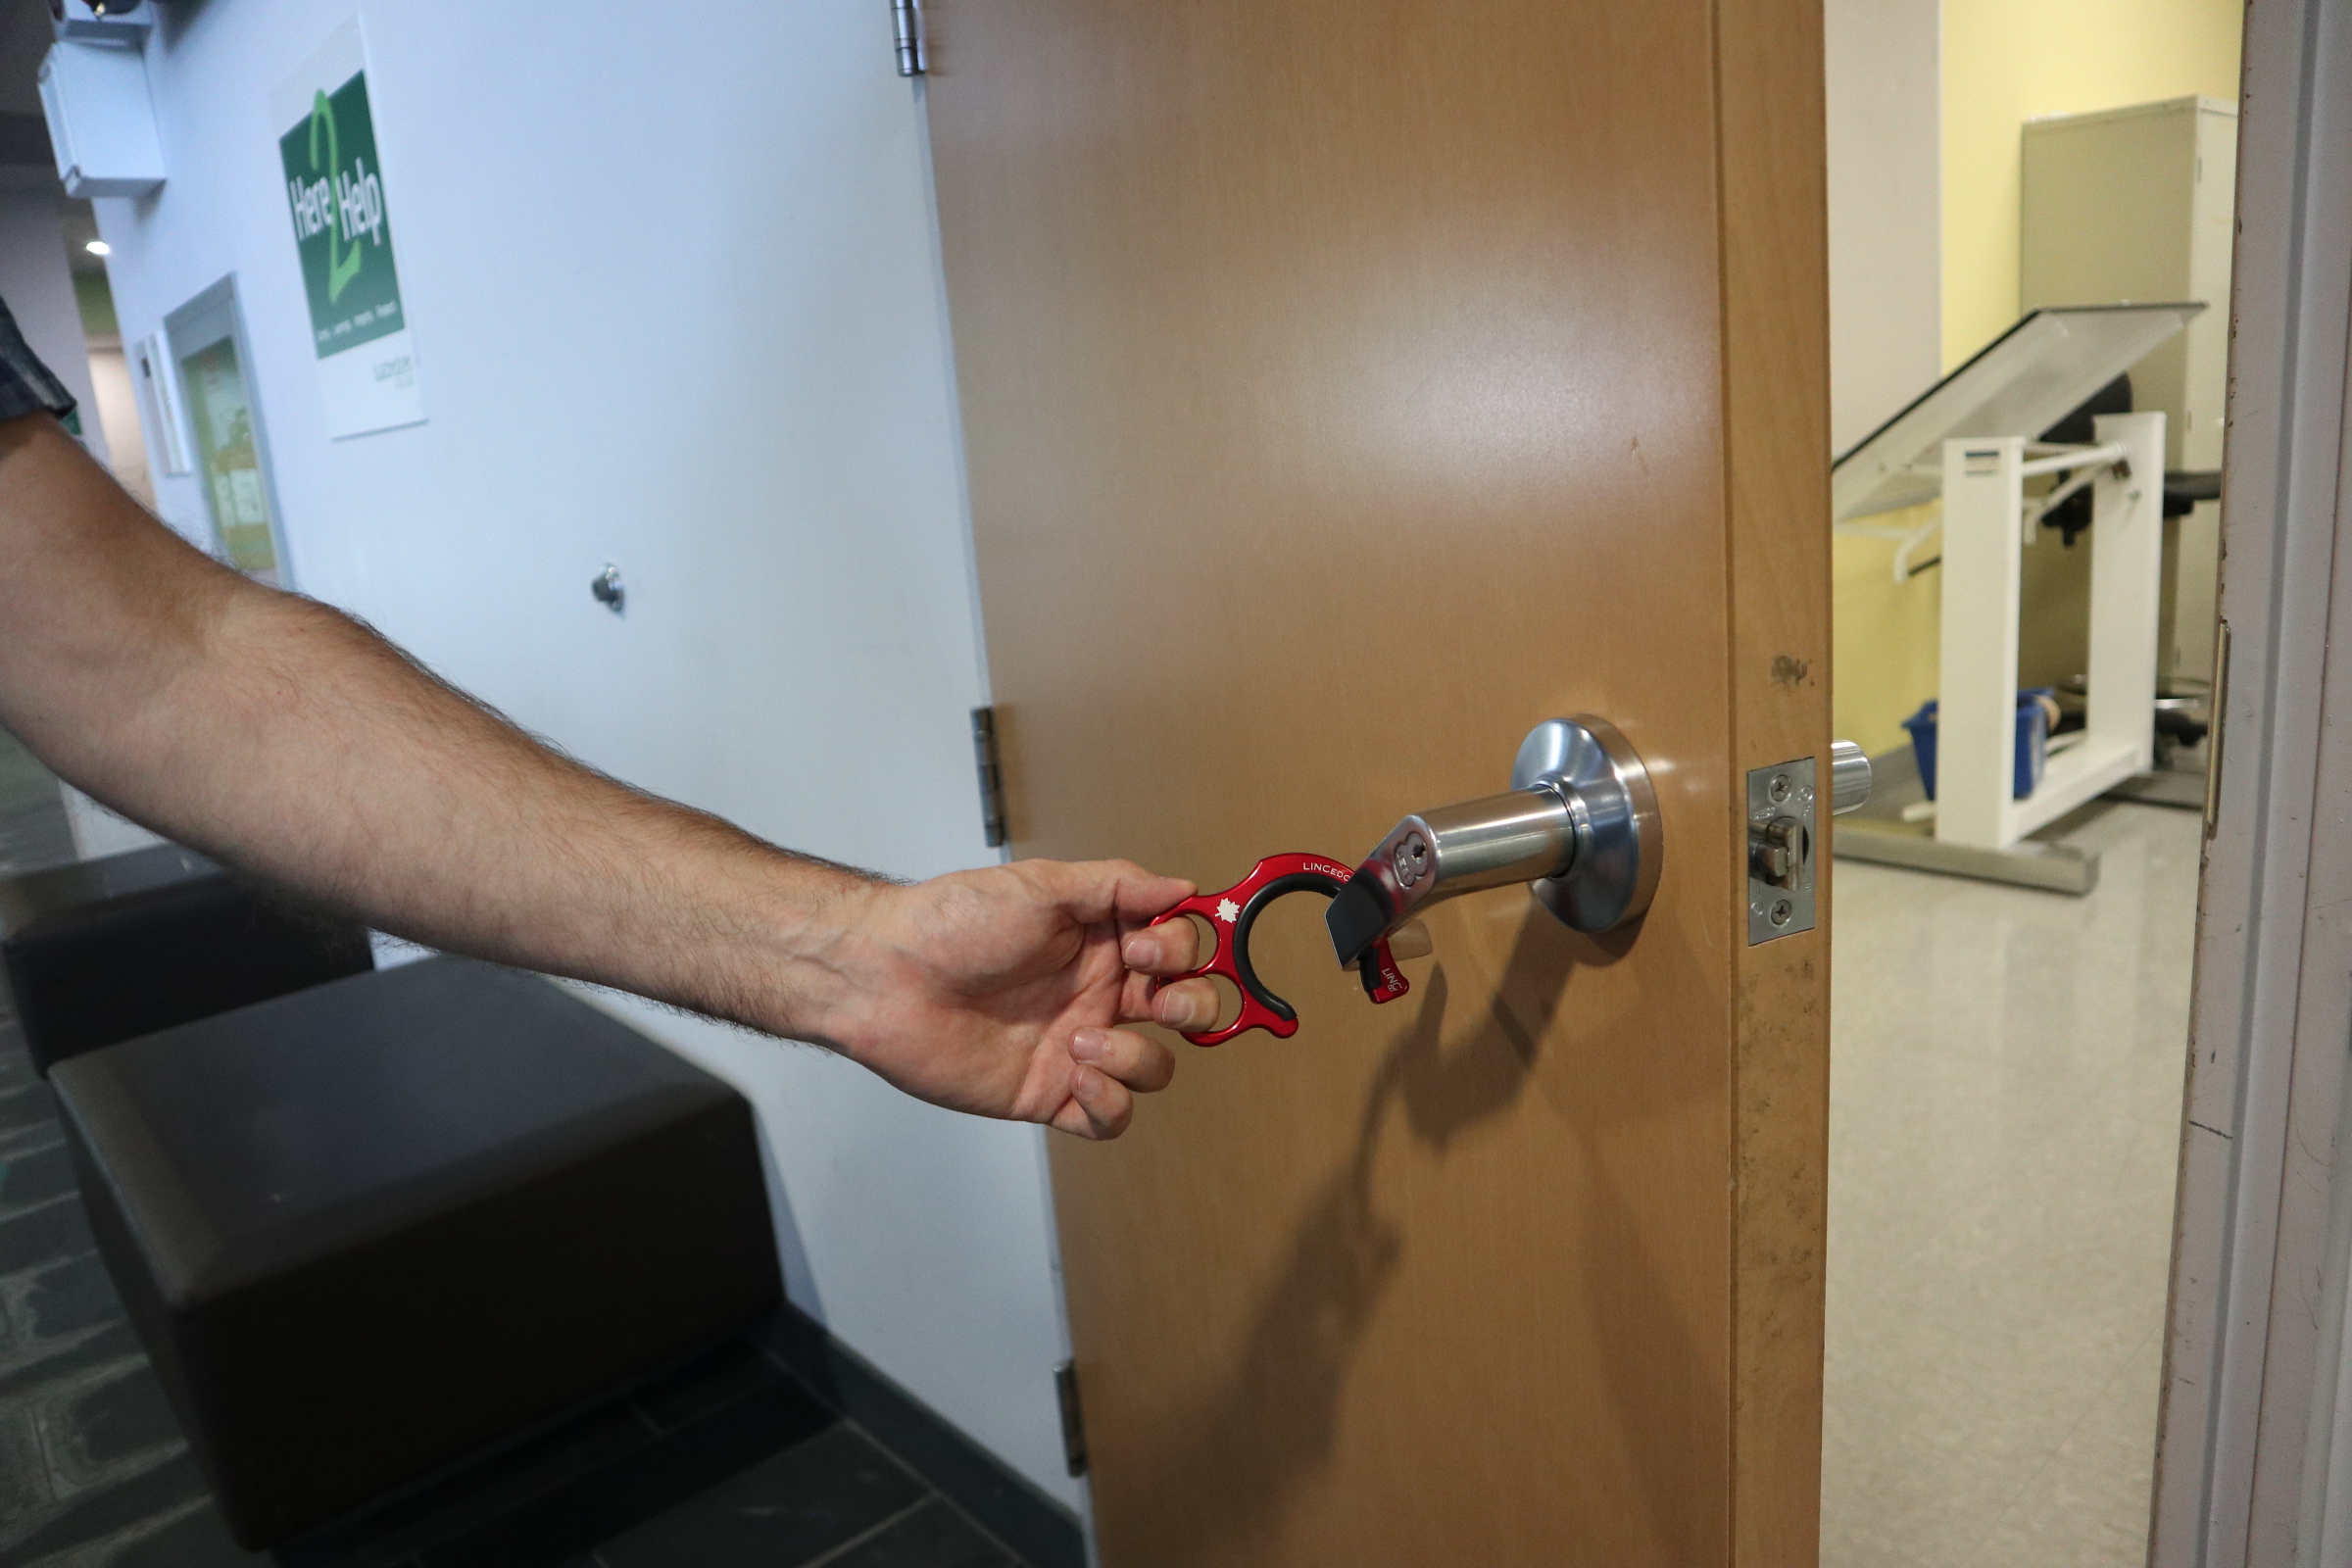 Contact-free and safe method to open doors